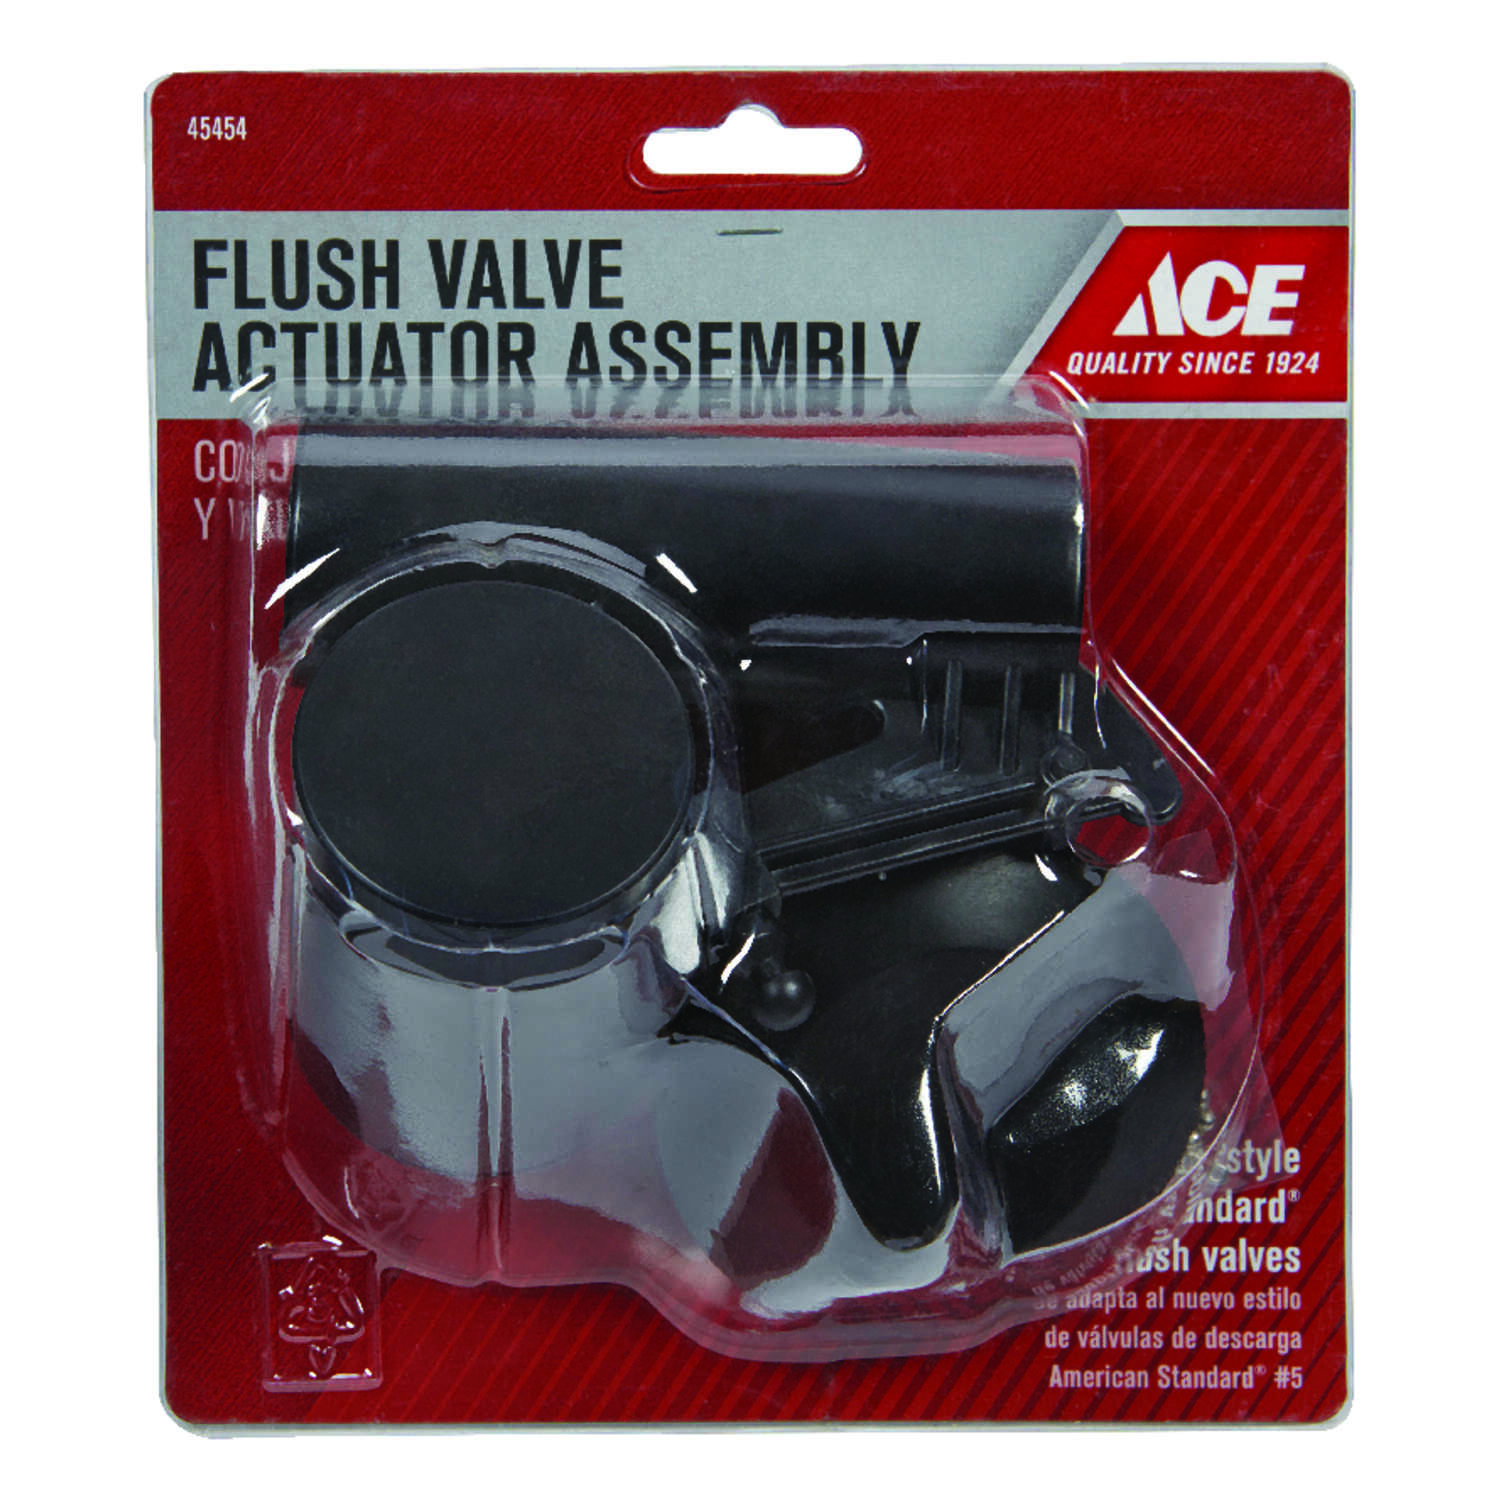 Ace  Flush Valve Actuator Assembly  Stainless Steel